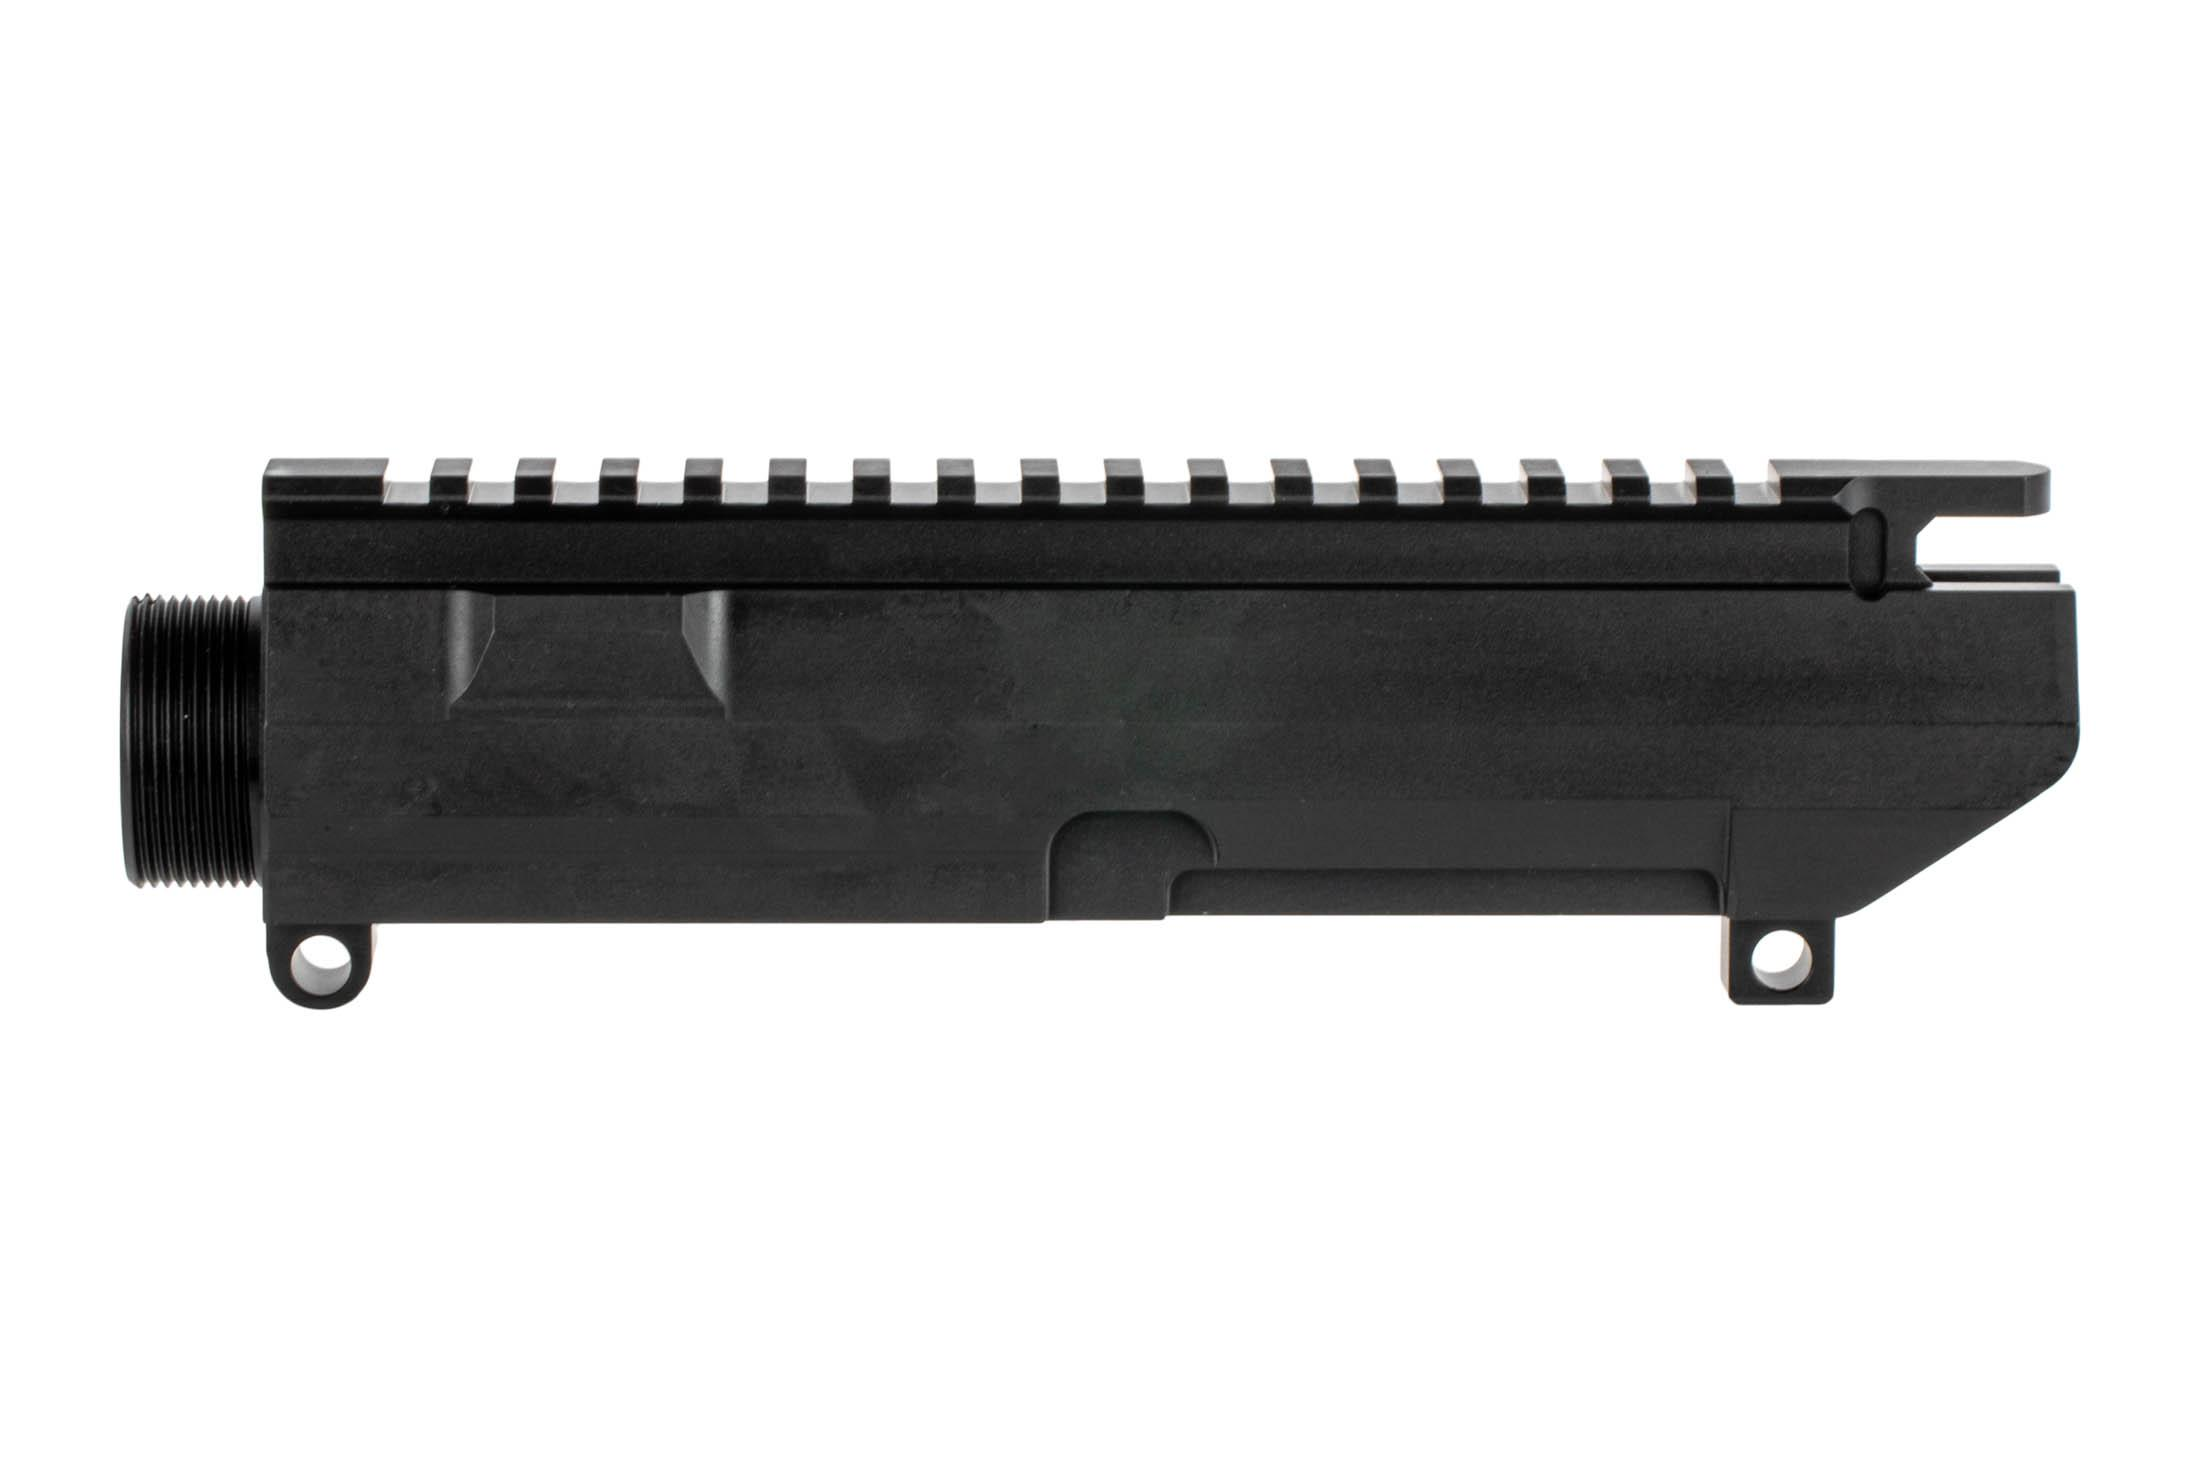 The Centurion Arms MK11 AR10 Upper Receiver features a picatinny top rail